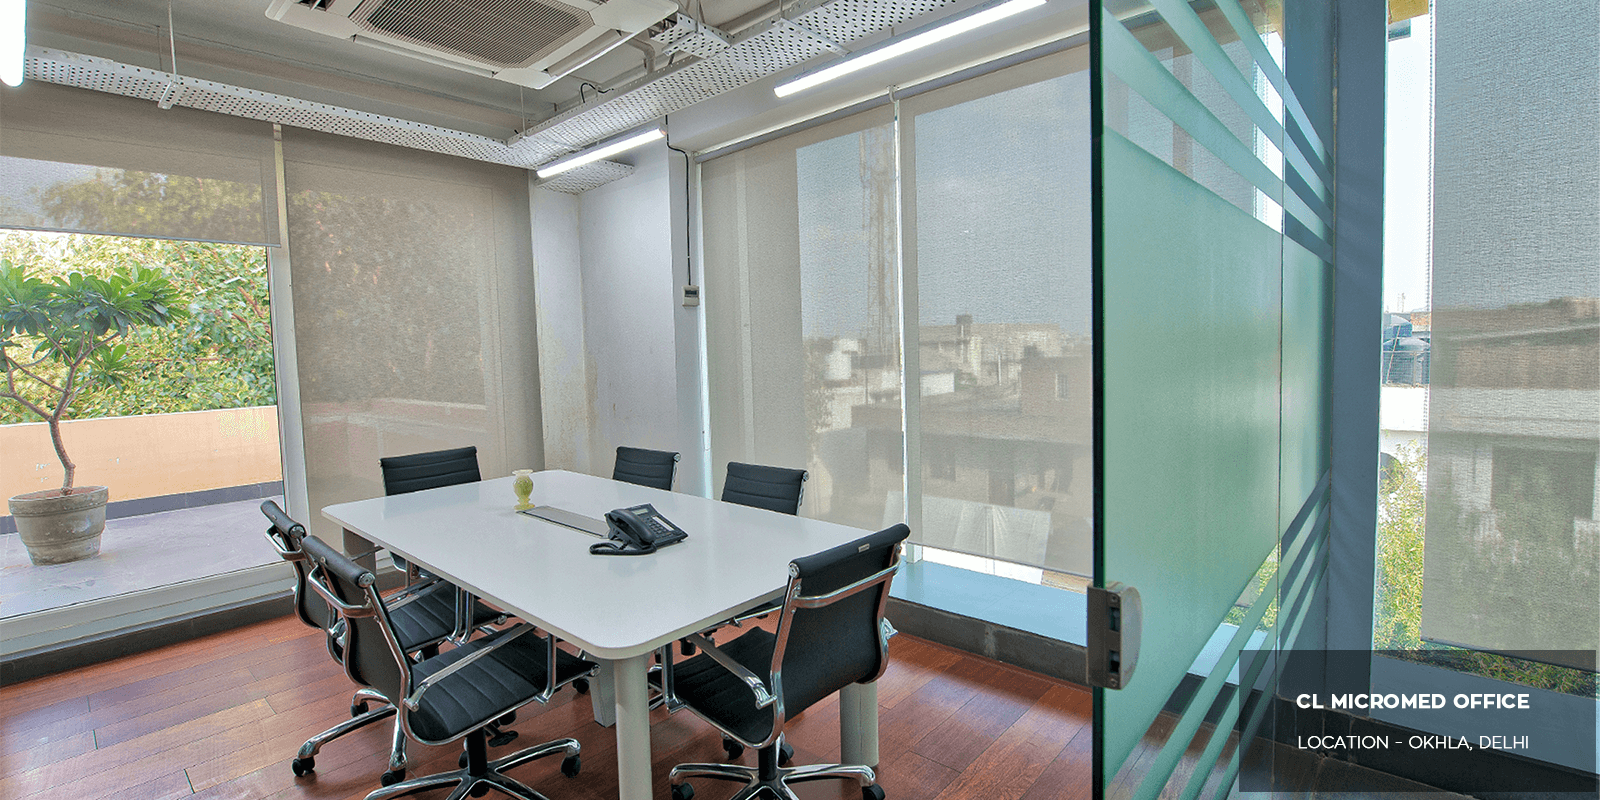 cl-micromedthe-novarch-architects-best-architects-in-cr-park-south-delhi-110019